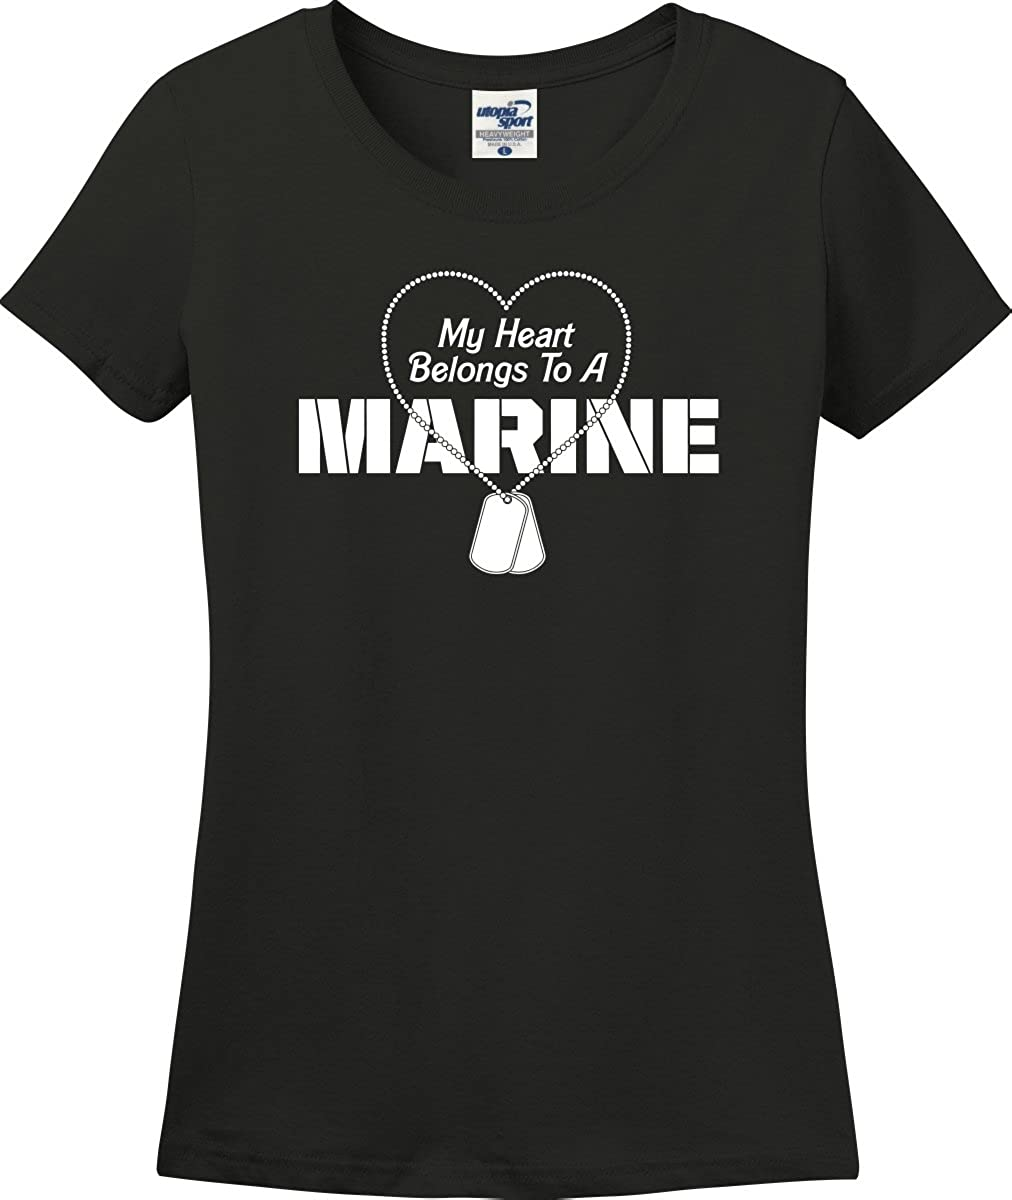 My Heart Belongs to A Marine T-shirts